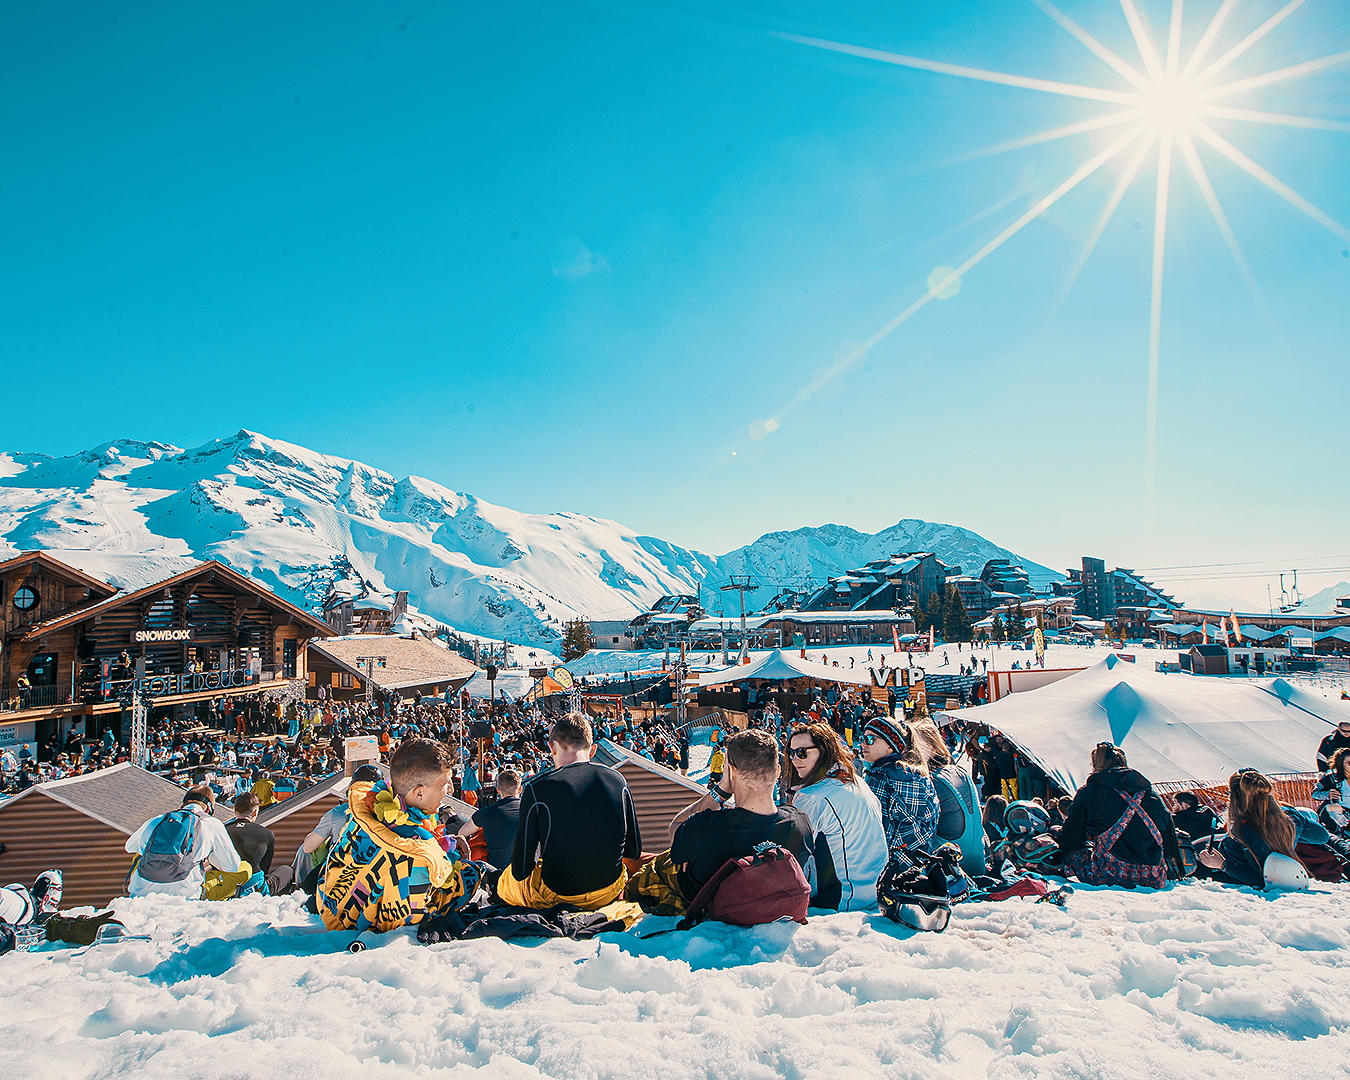 Partygoers take five on the beautiful slopes at Treble Cone.